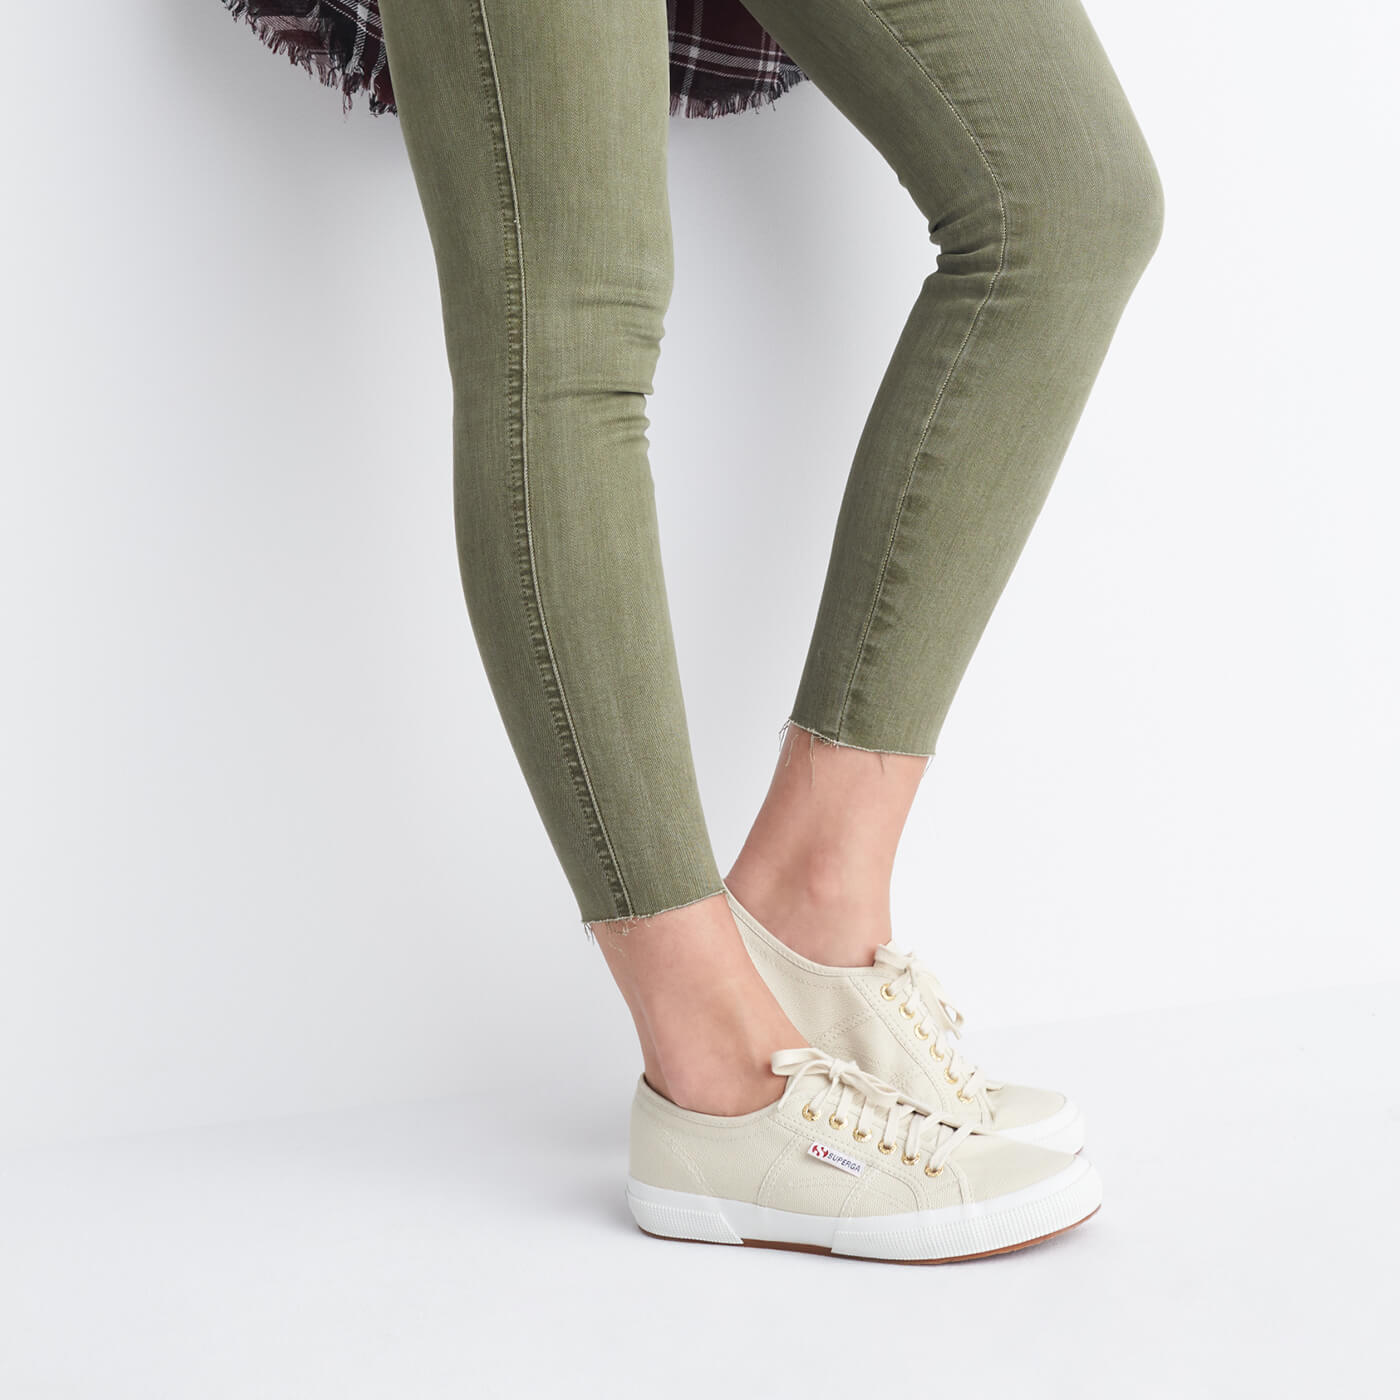 7b6d730988b7 WATCH: What shoes do I pair with skinny jeans? | Stitch Fix Style